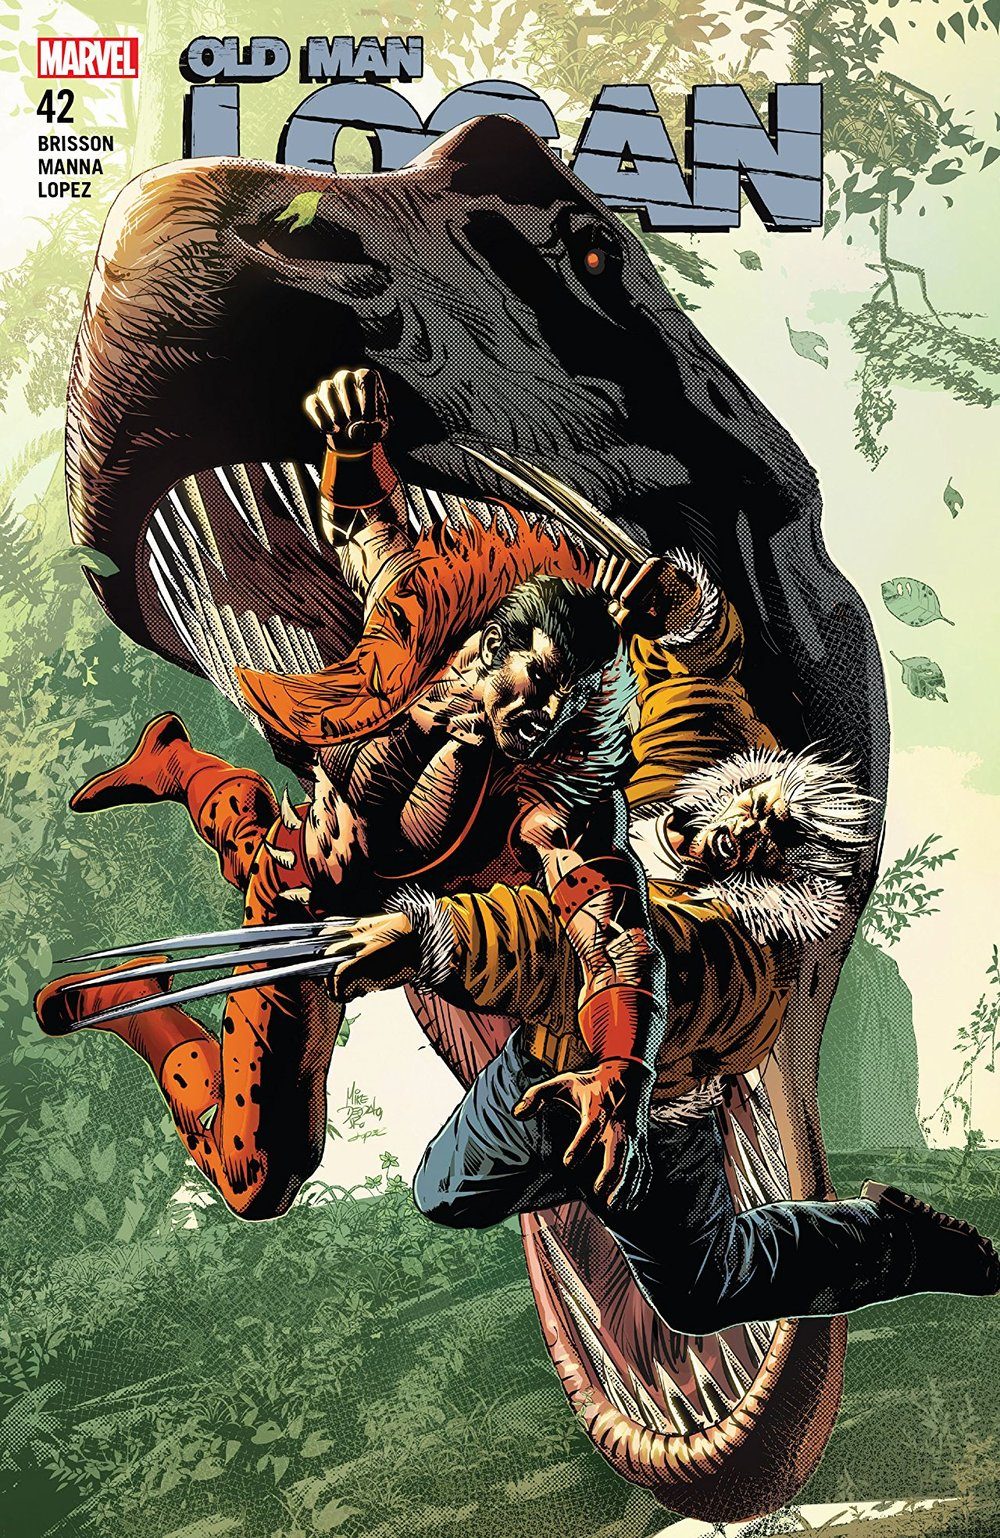 old man logan 42 review you don t read comics